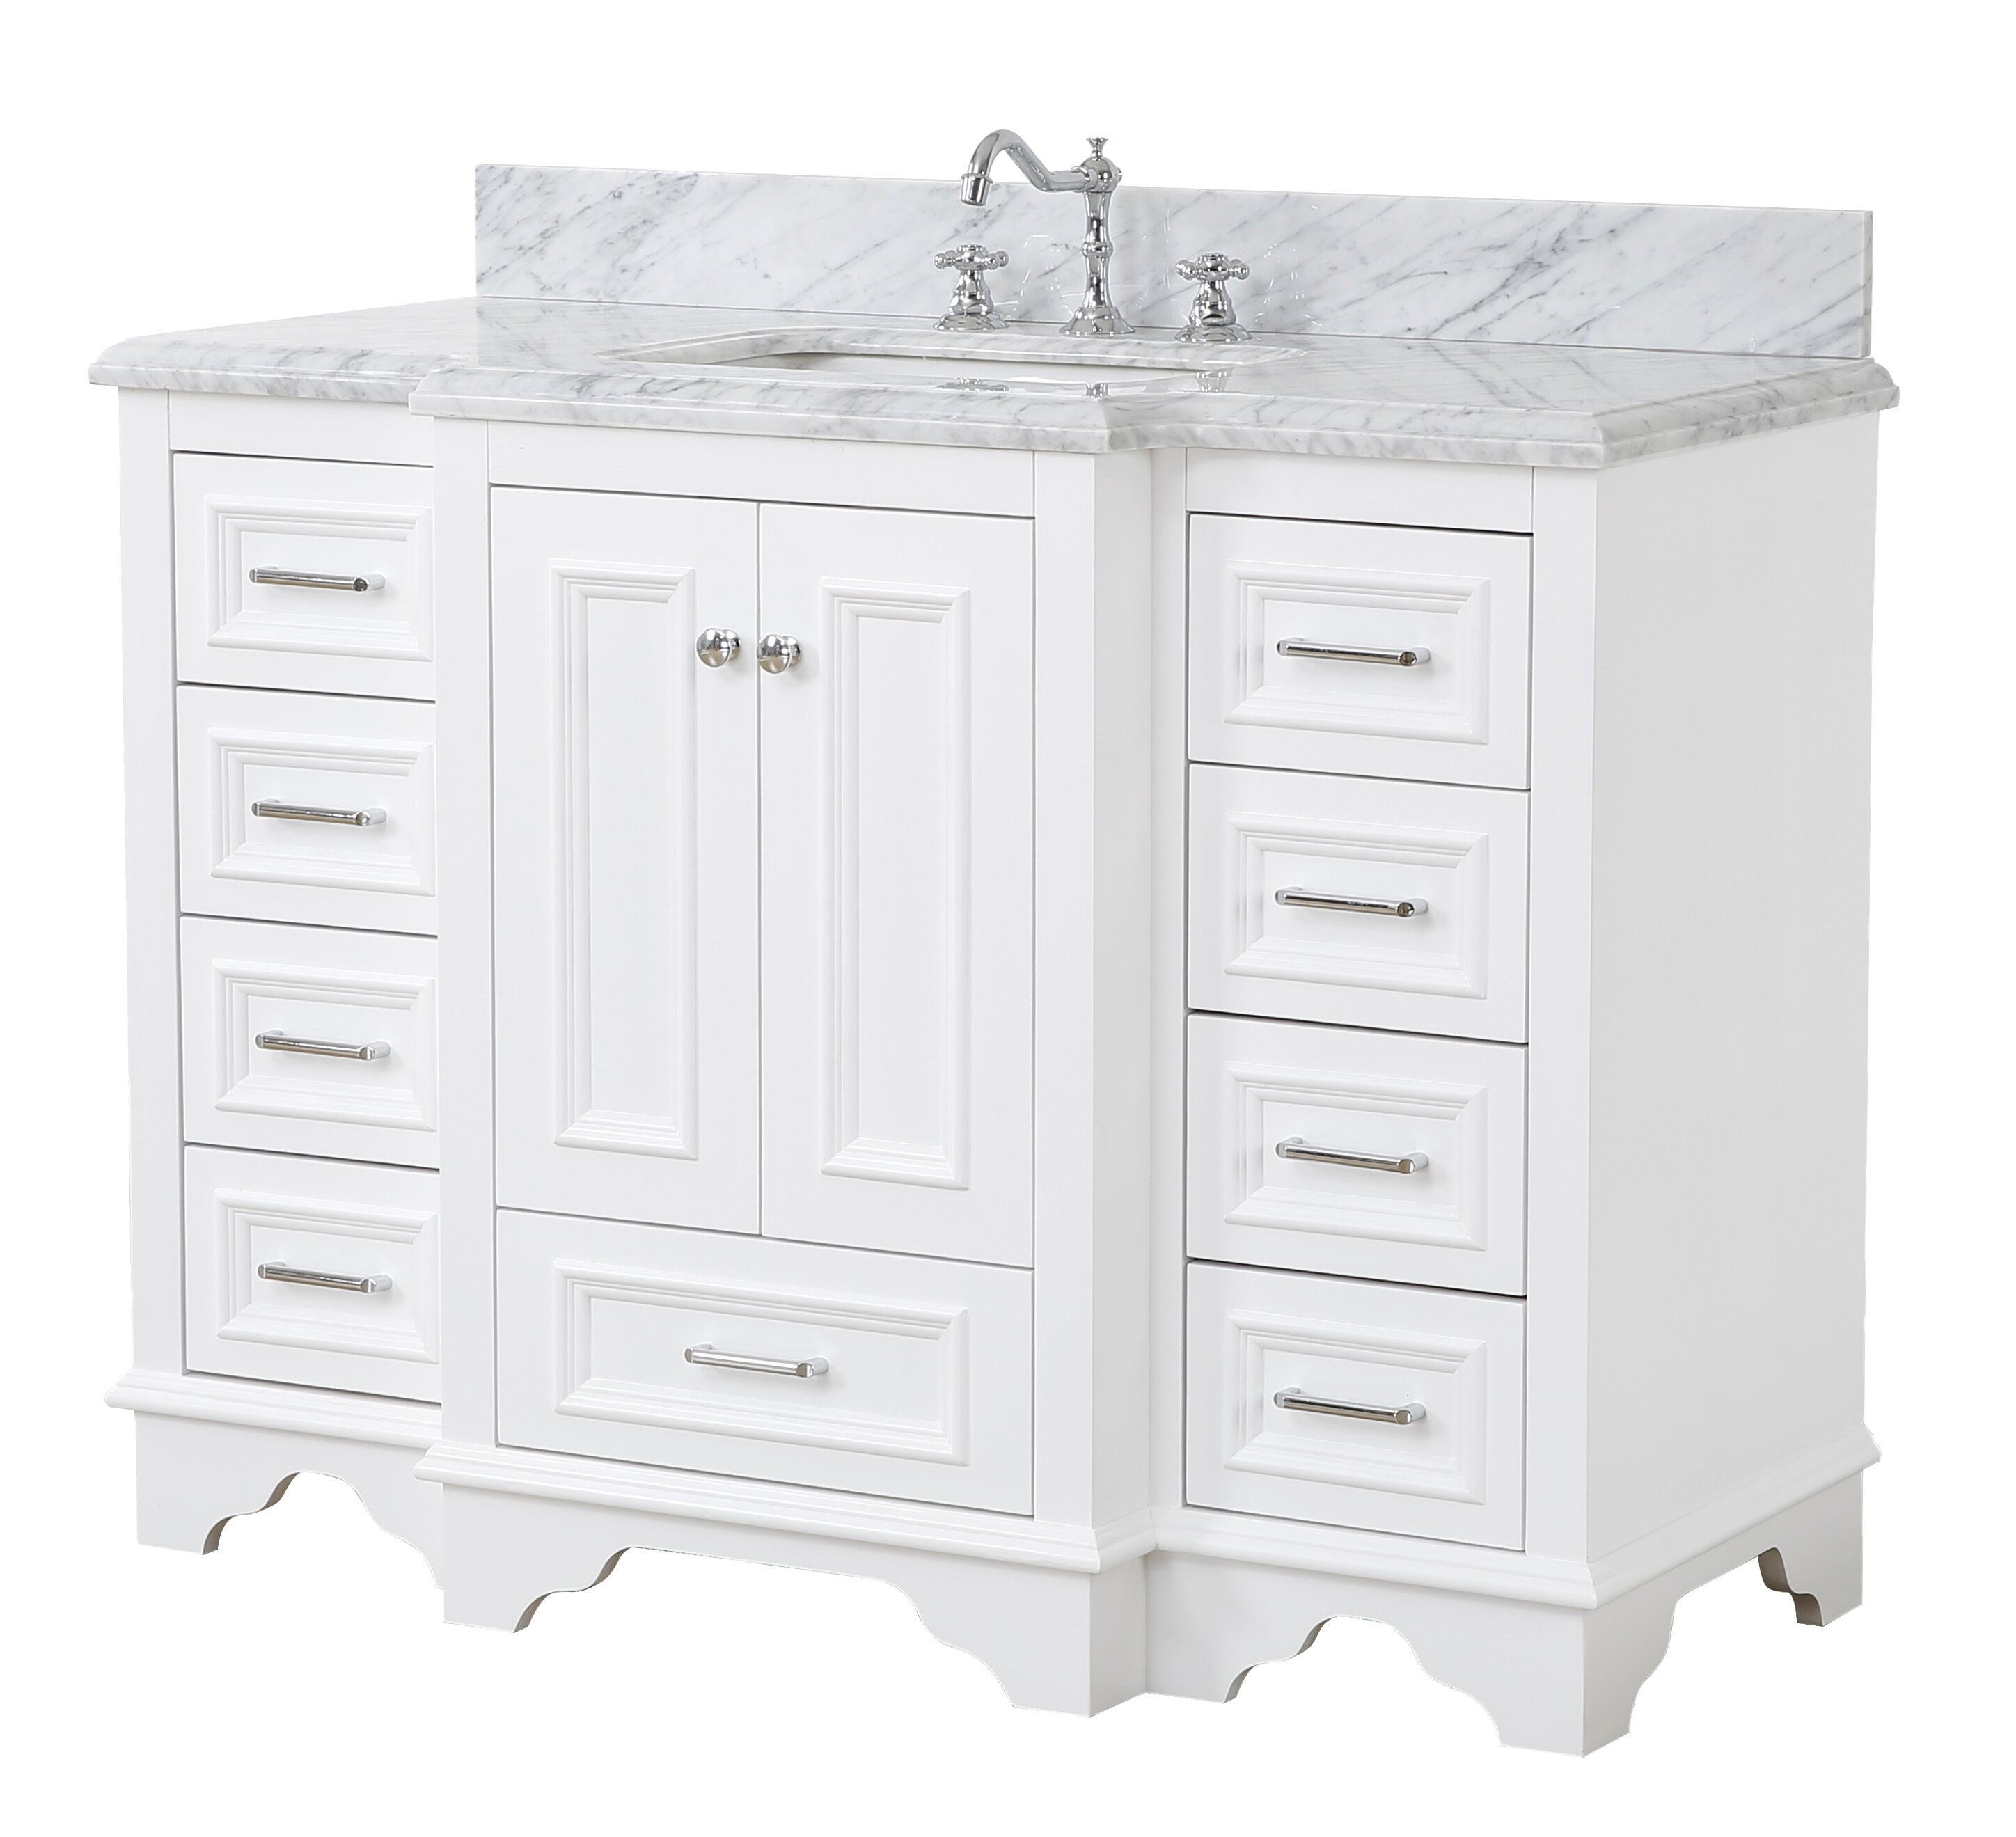 inch vanities bathroom design com vanity without bathrooms homefield top tops white with voicesofimani